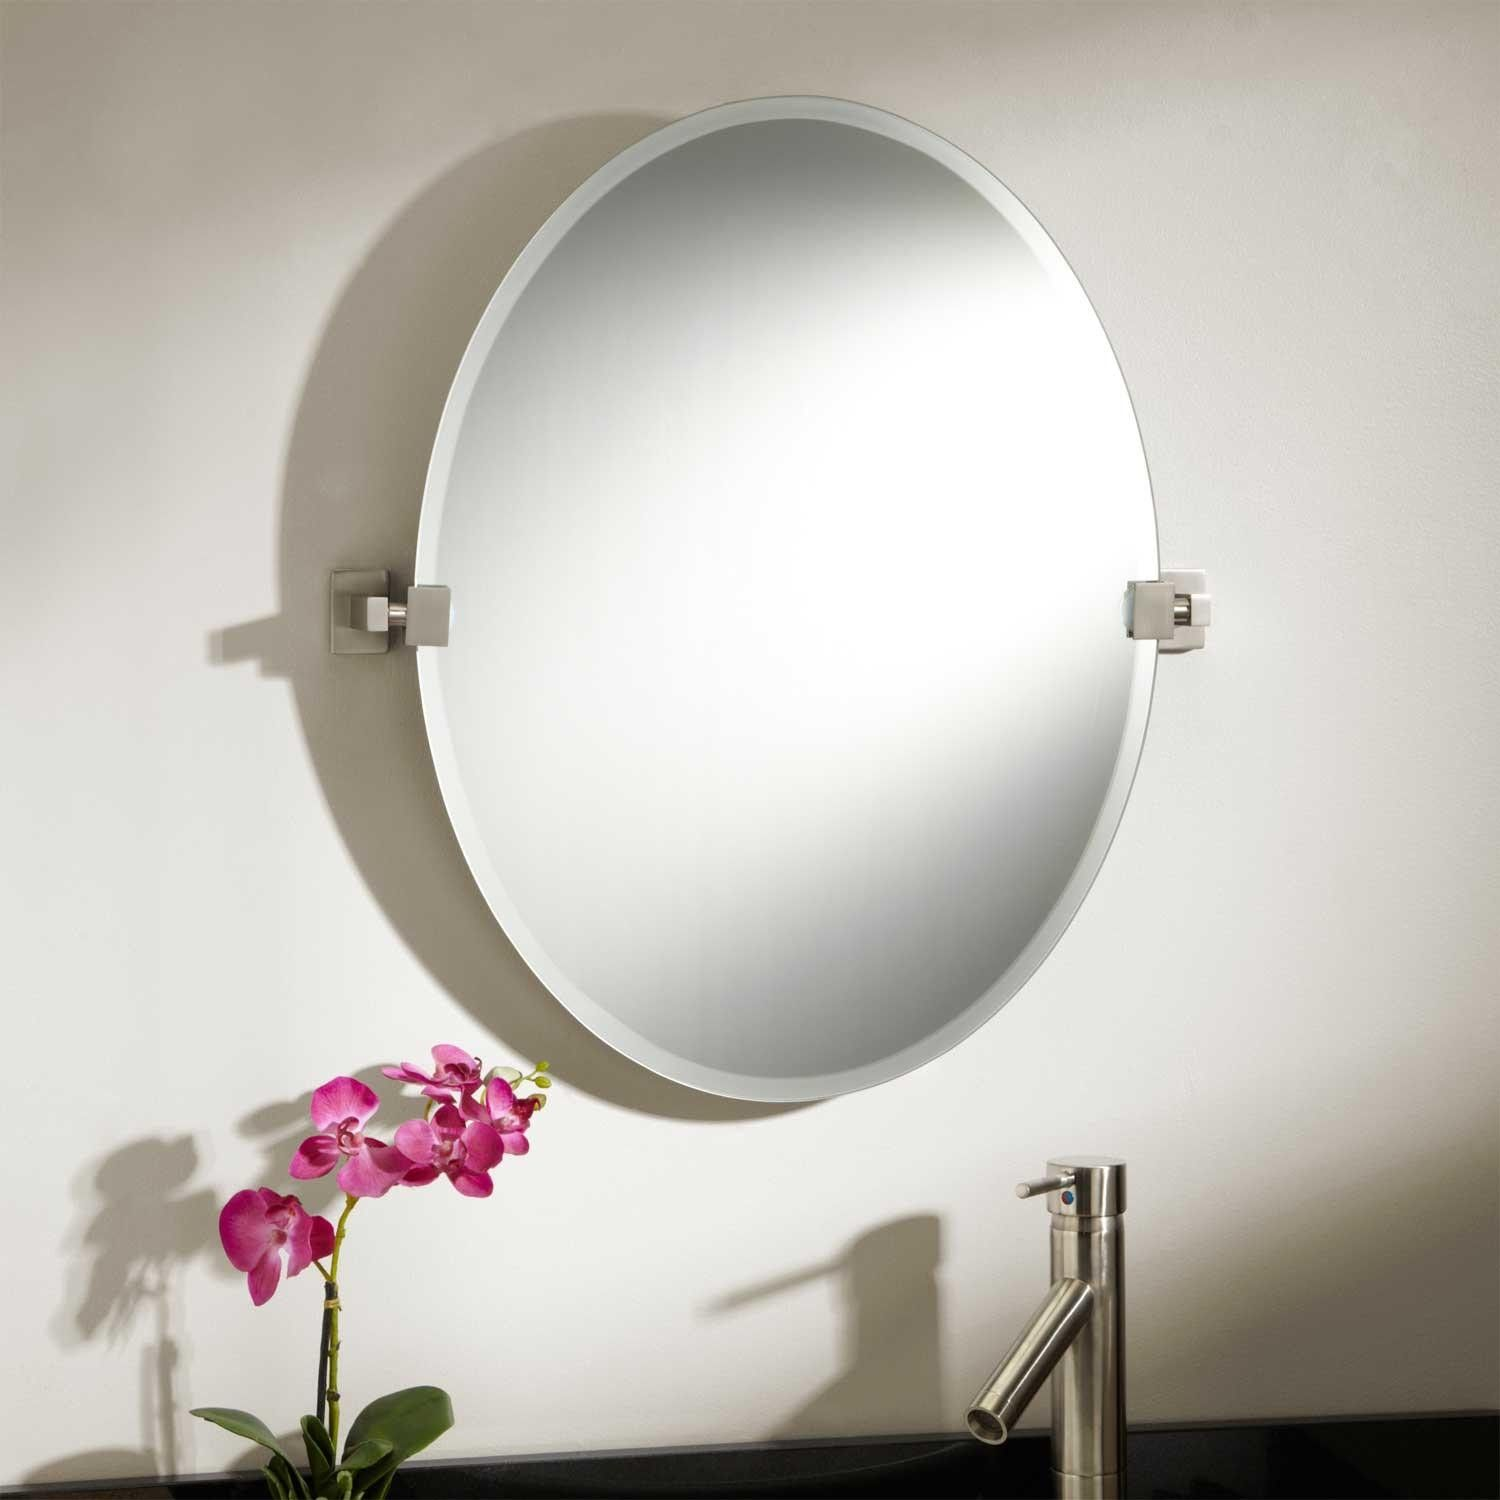 24 Helsinki Oval Tilting Mirror Bathroom Mirror Round Mirror Bathroom Mirror